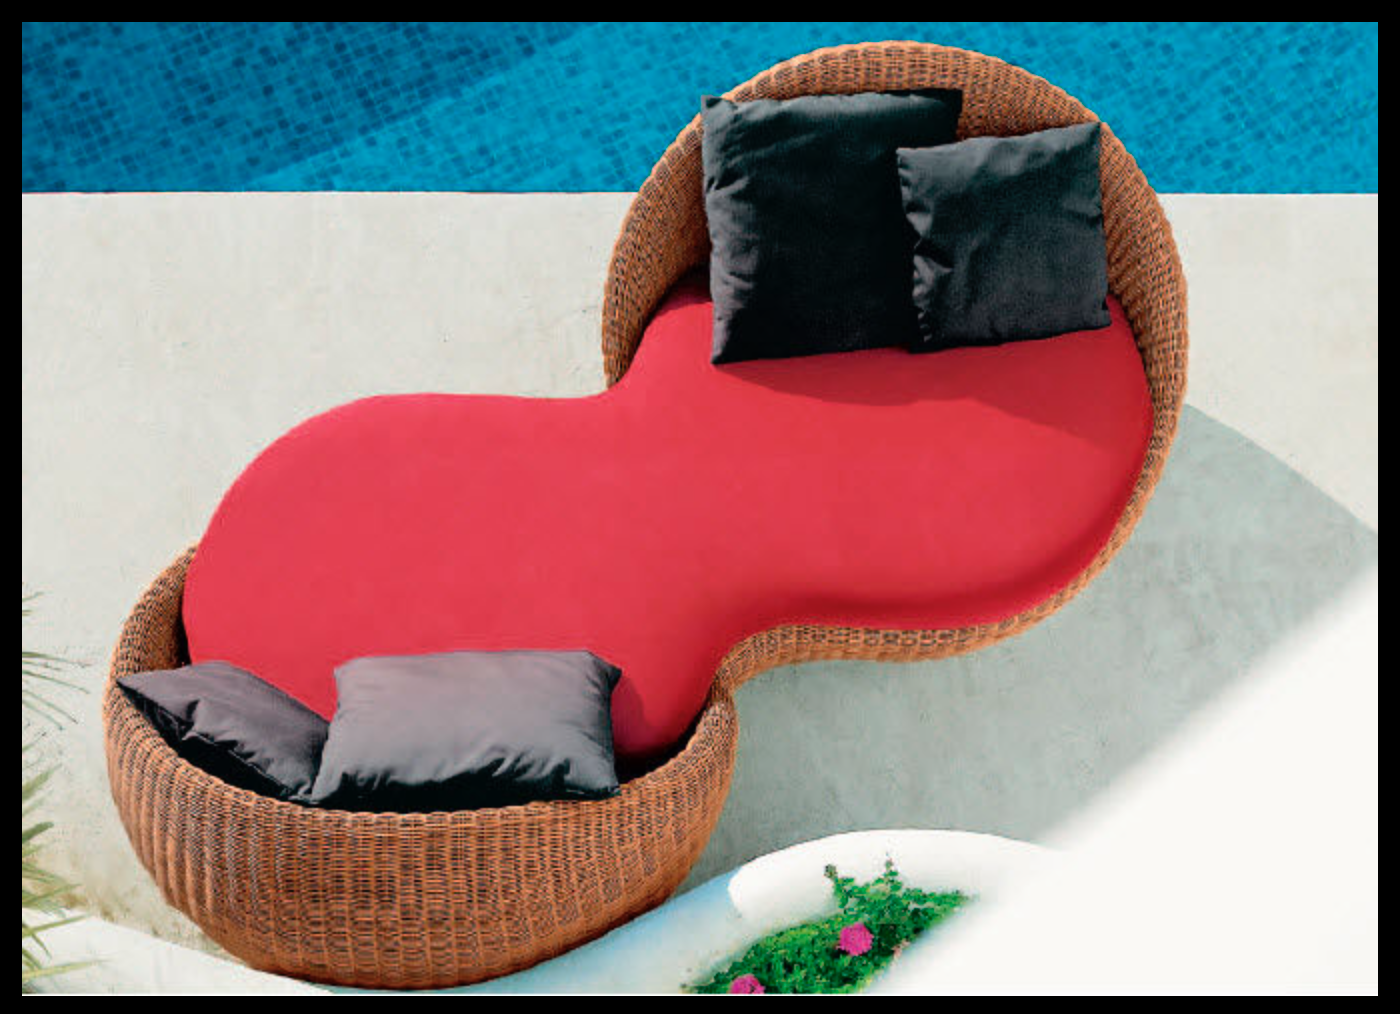 chaise longue de transat relax jardin fauteuil piscine en resine tressee maroc. Black Bedroom Furniture Sets. Home Design Ideas